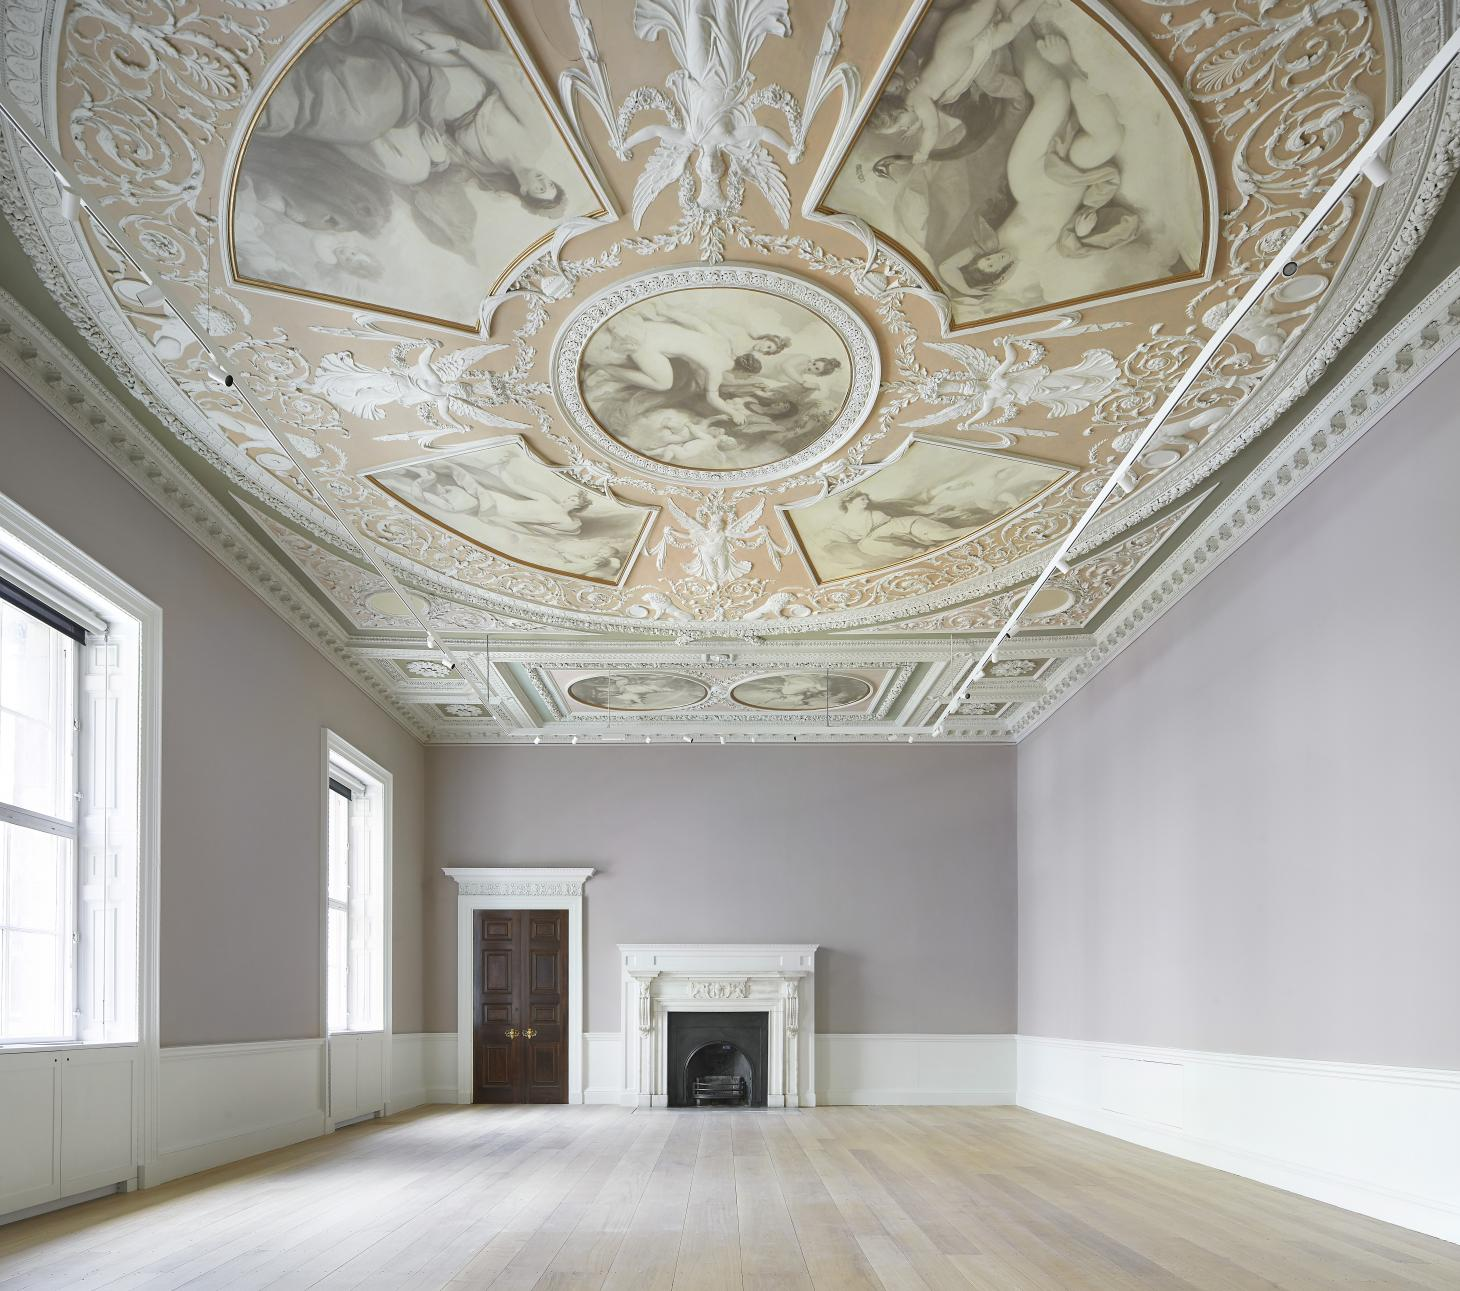 the renovated courtauld gallery in London and its rich interiors